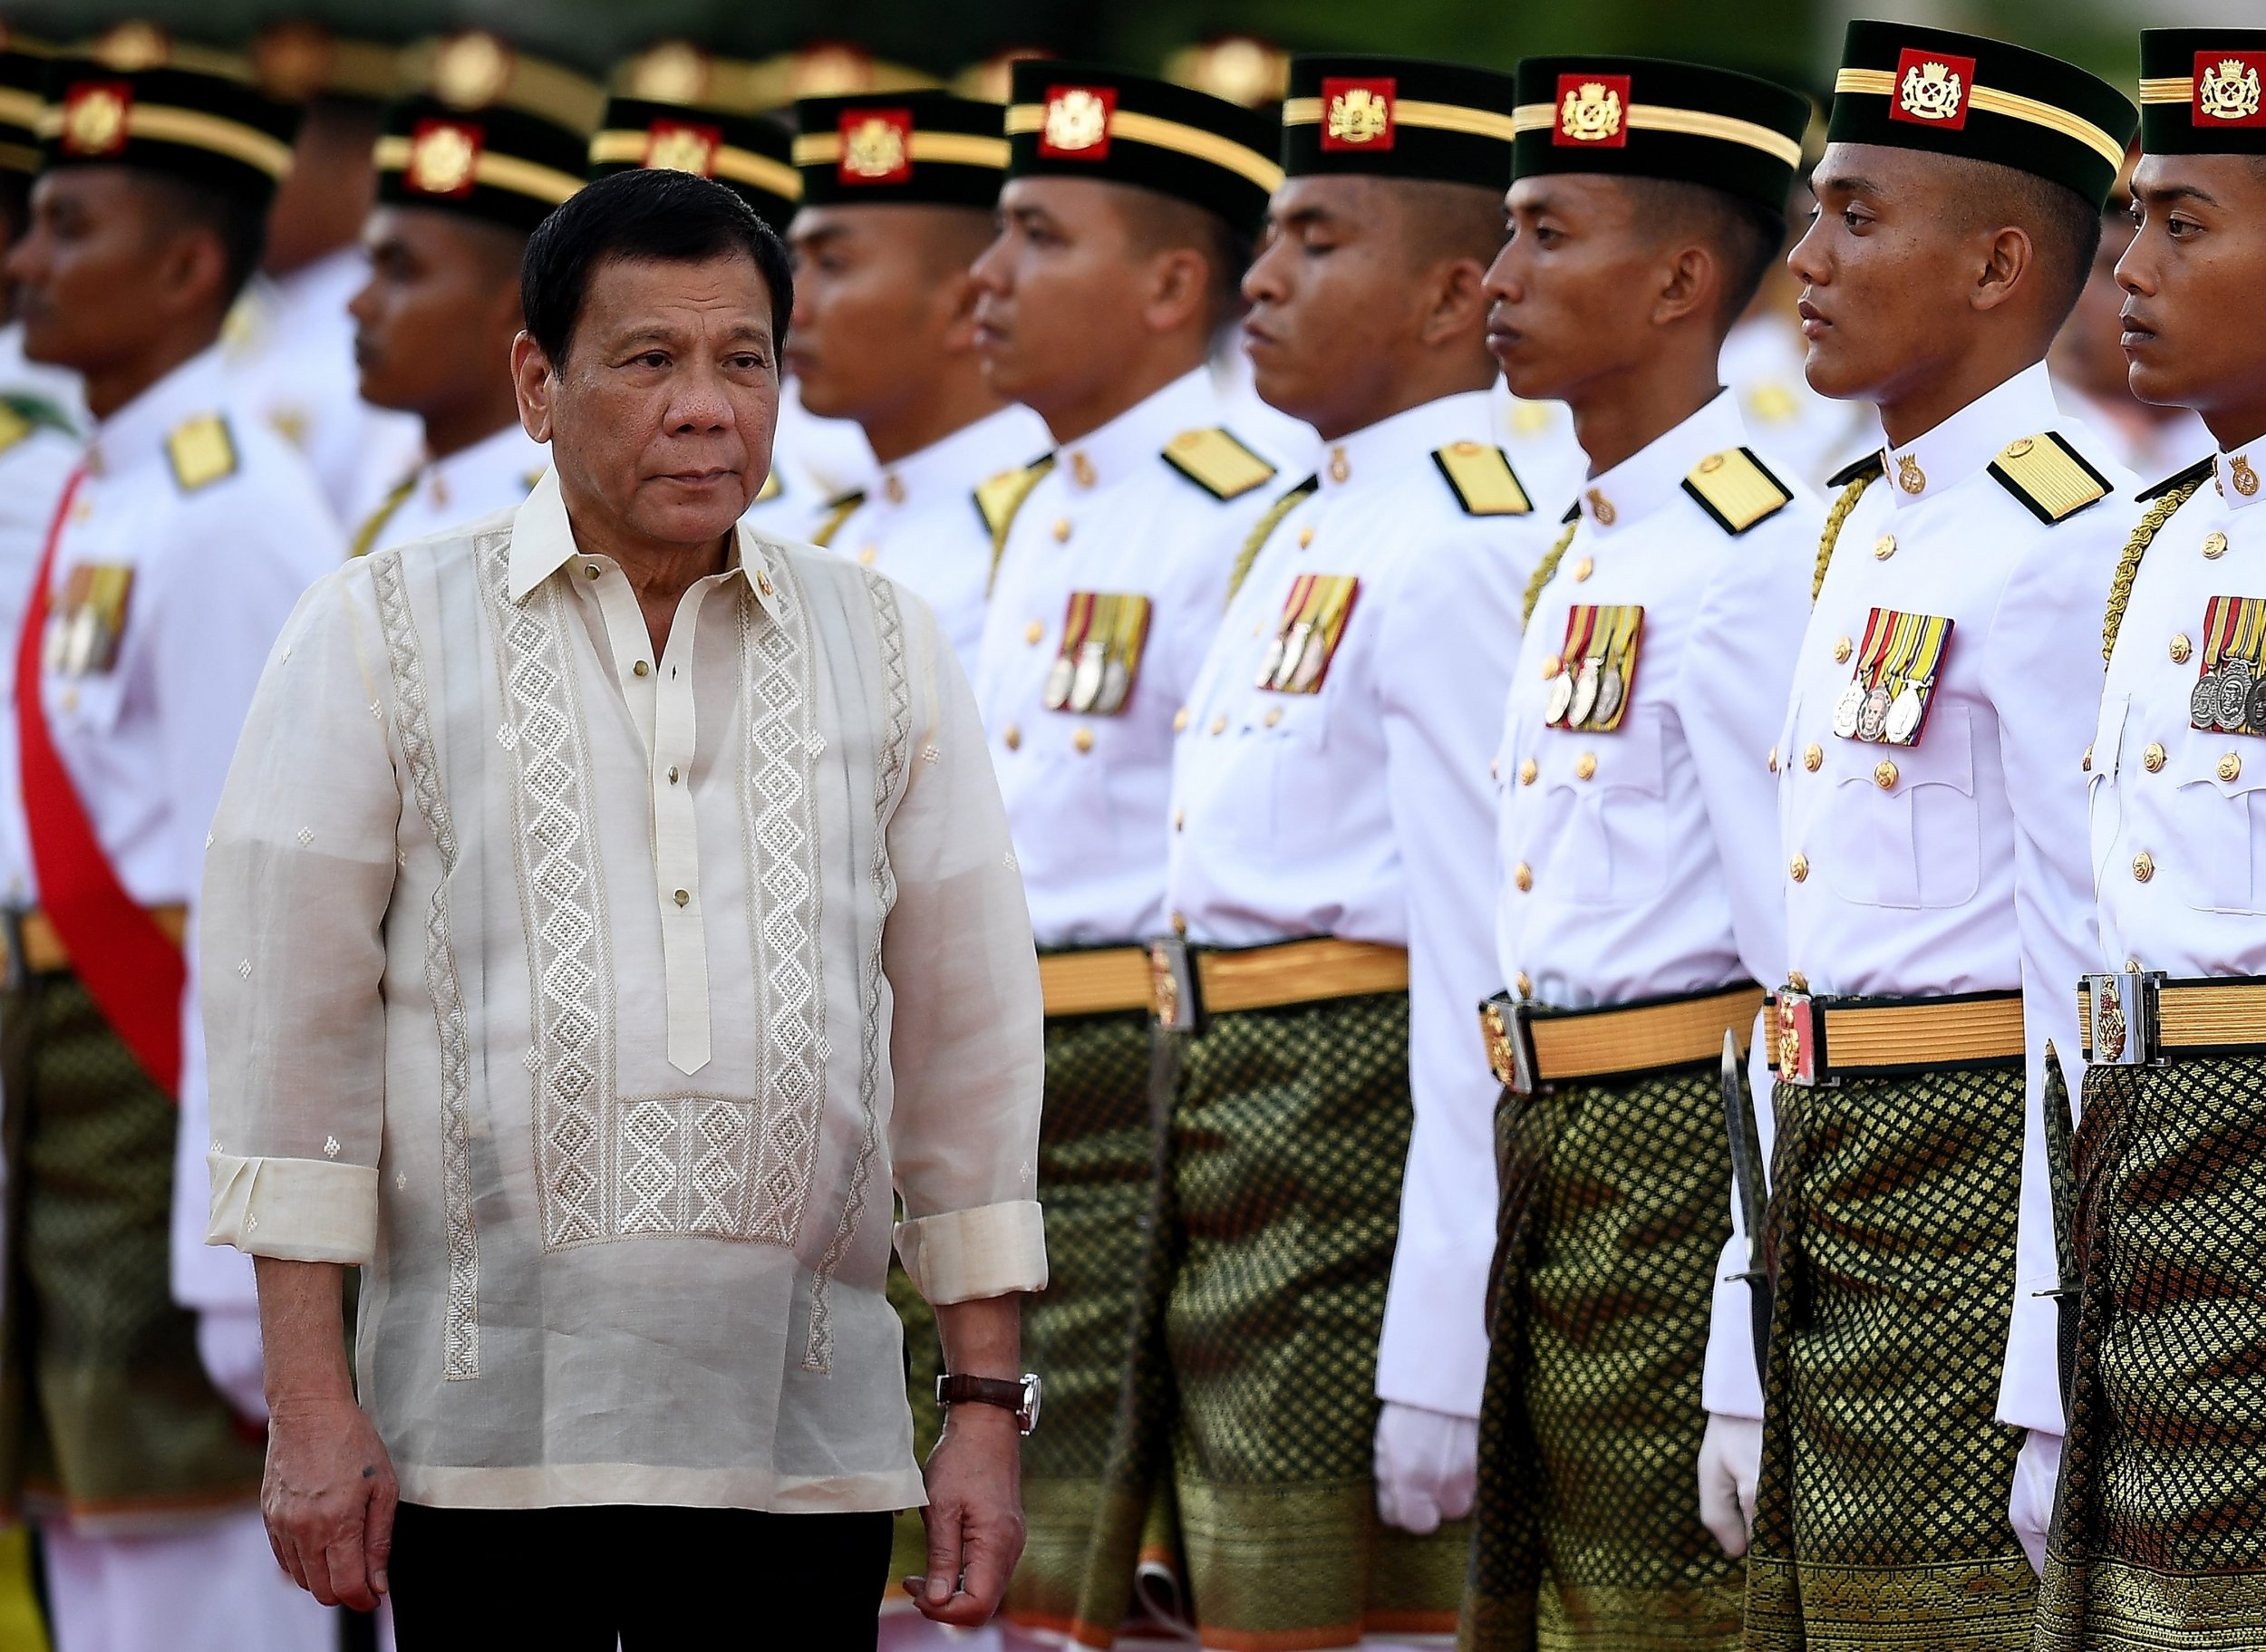 Philippines's Rodrigo Duterte: If ISIS Arrives, Forget About Human Rights